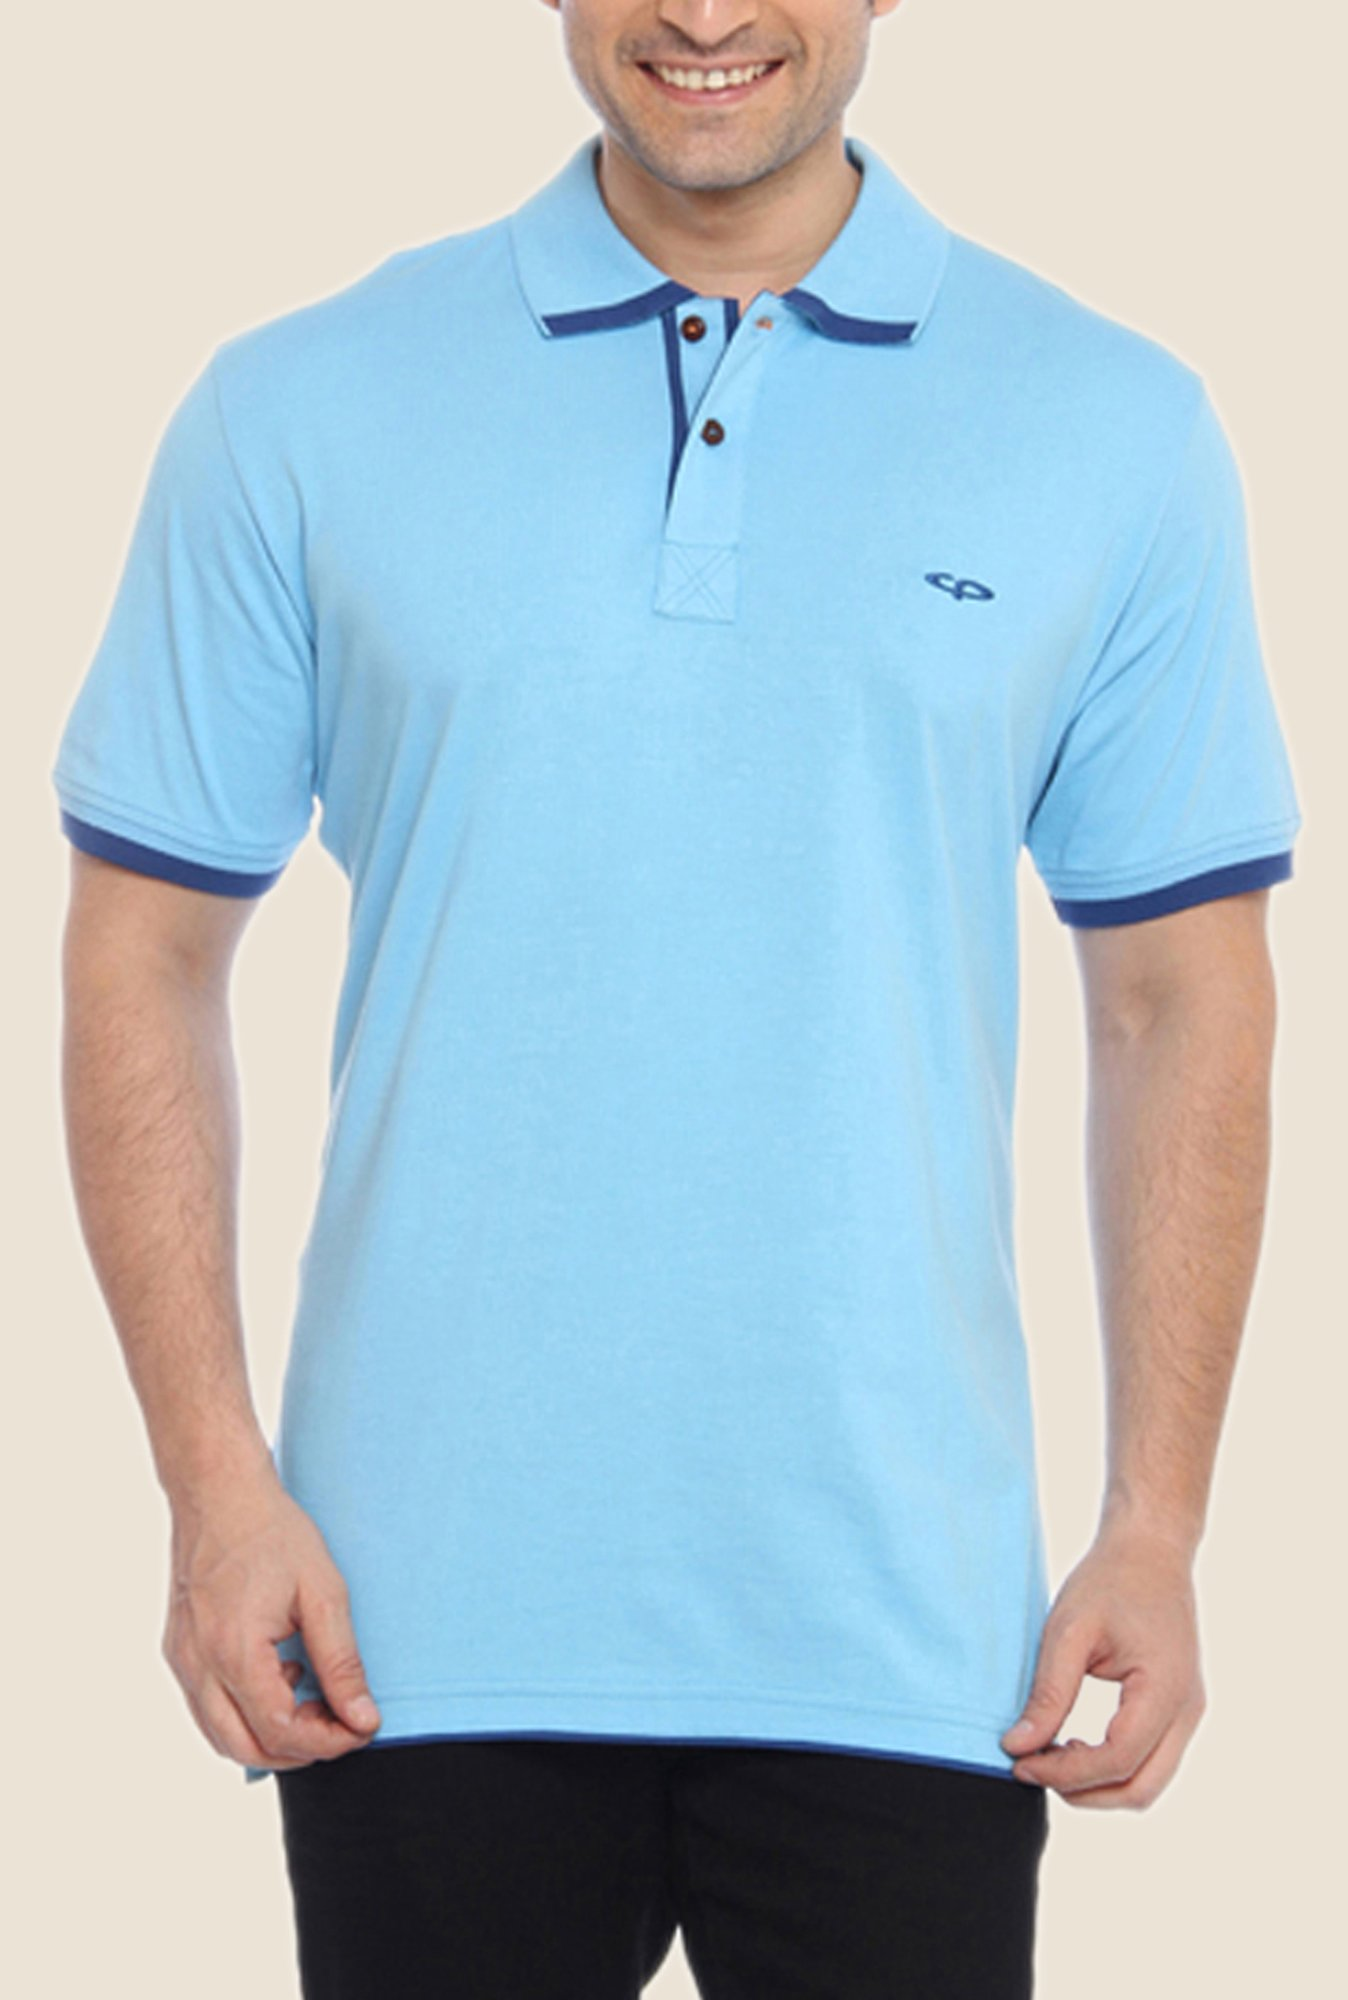 ColorPlus Light Blue Solid Polo T Shirt